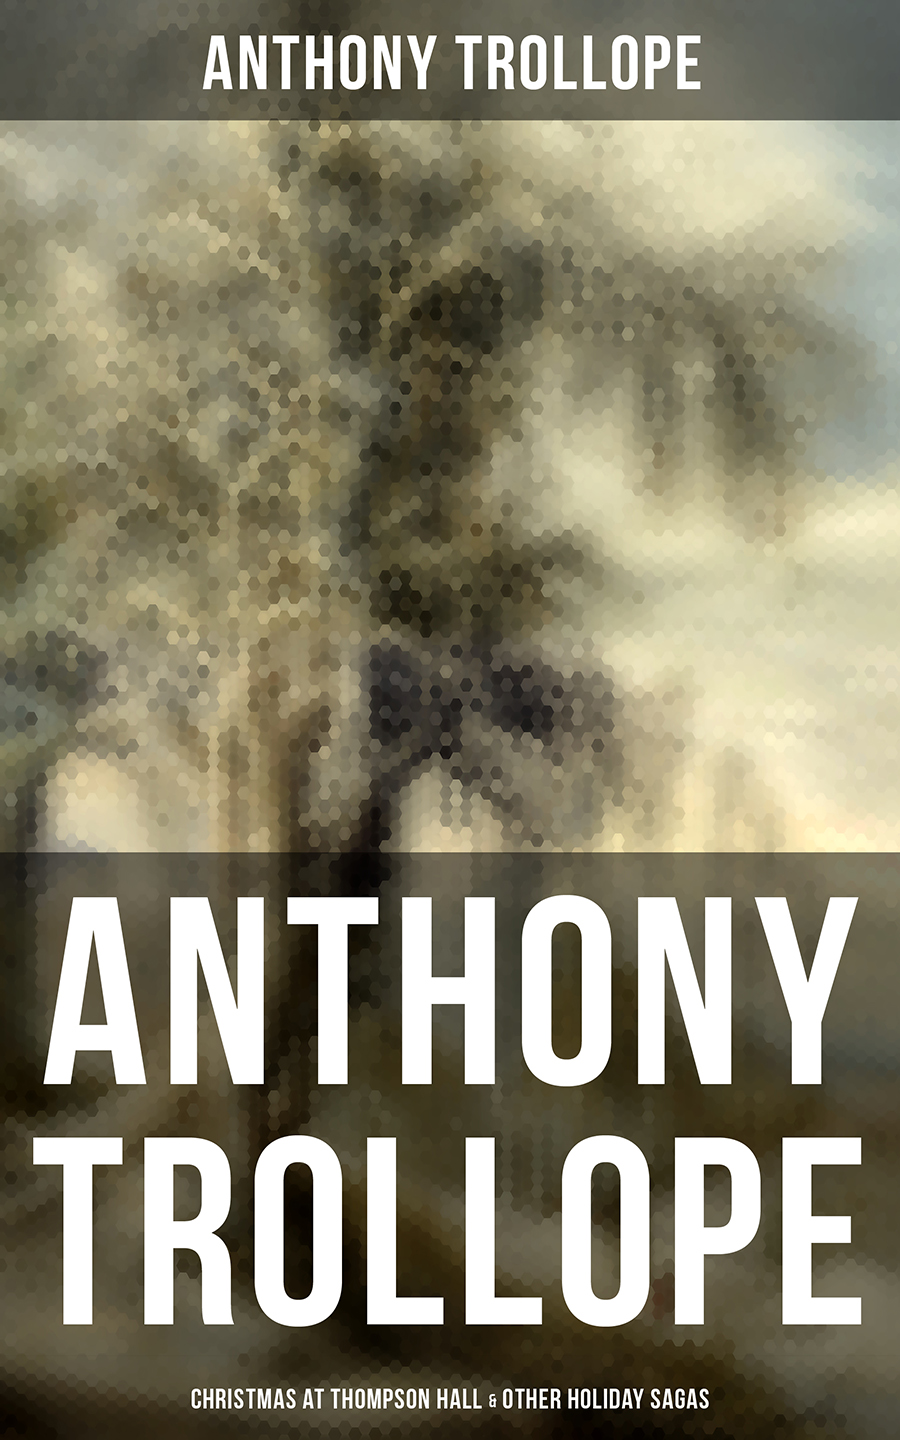 Anthony Trollope ANTHONY TROLLOPE: Christmas At Thompson Hall & Other Holiday Sagas trollope anthony harry heathcote of gangoil